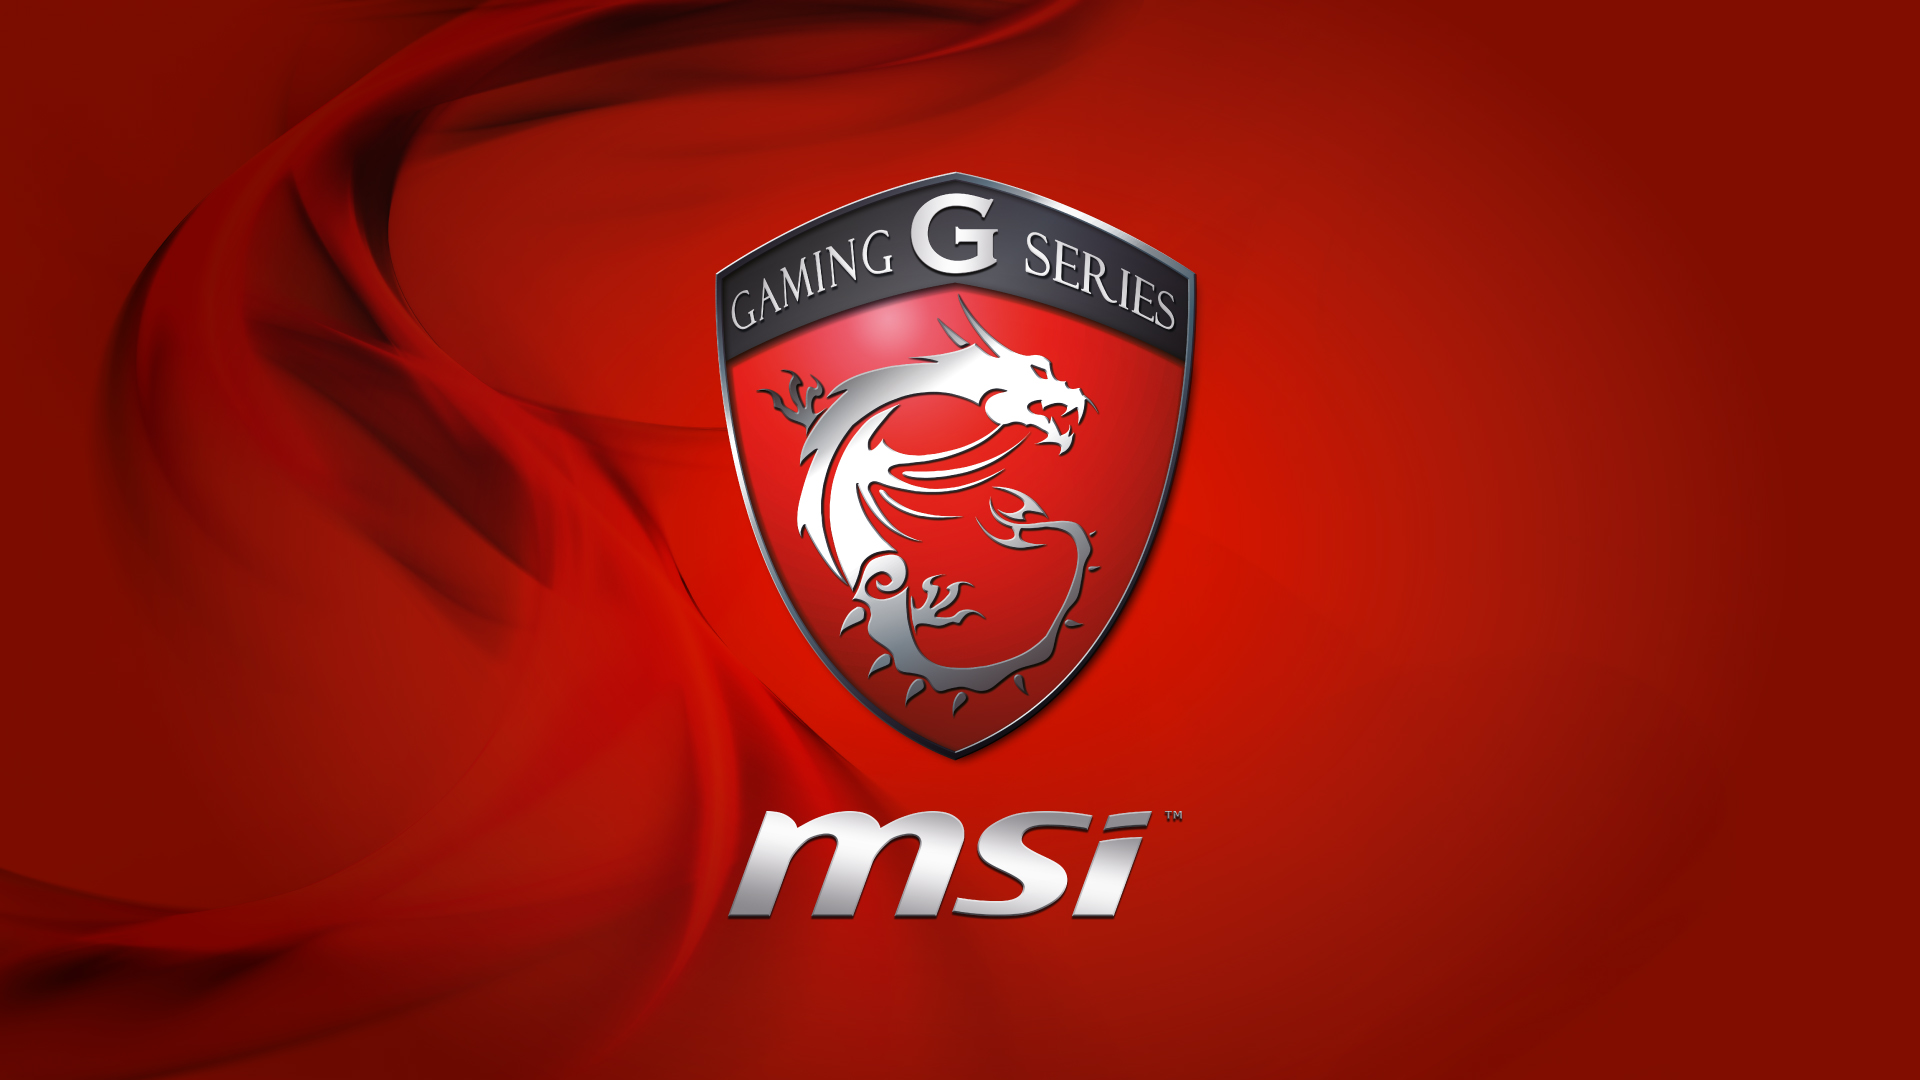 MSI High Quality Background on Wallpapers Vista